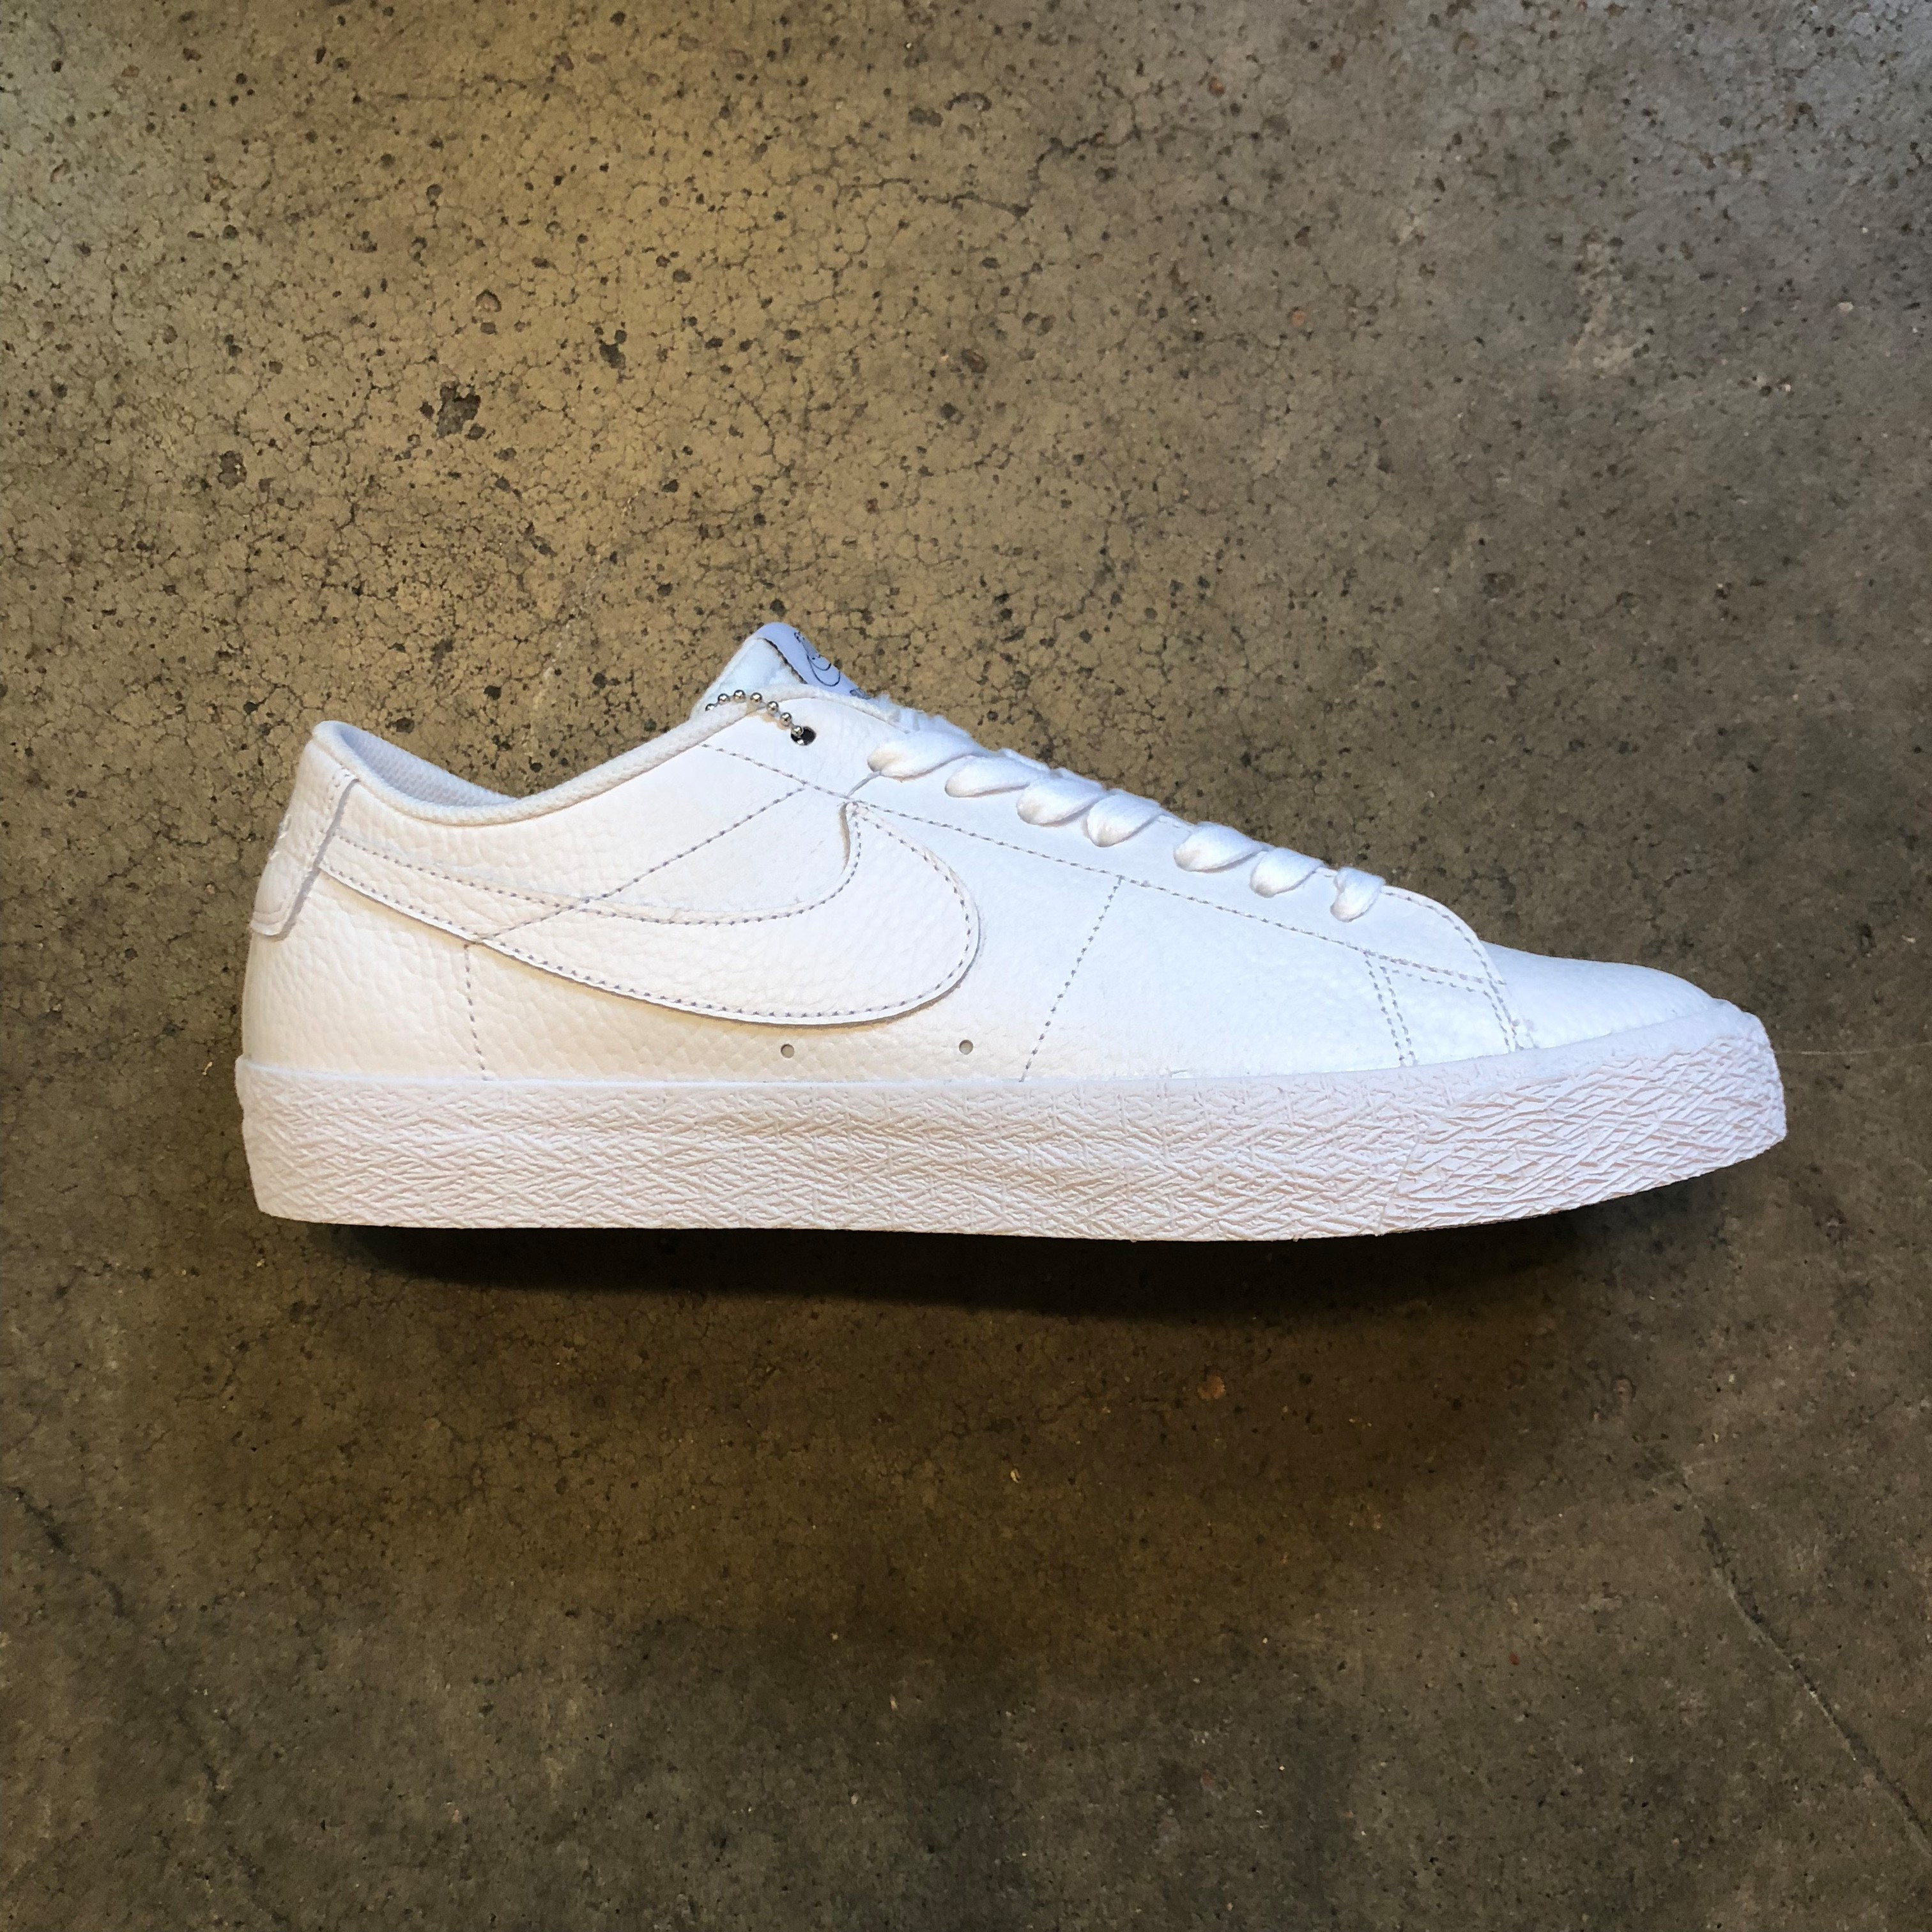 72223bf4ba7e Nike SB Blazer Low NBA (White White Rush Blue) Shoes Mens at Emage ...